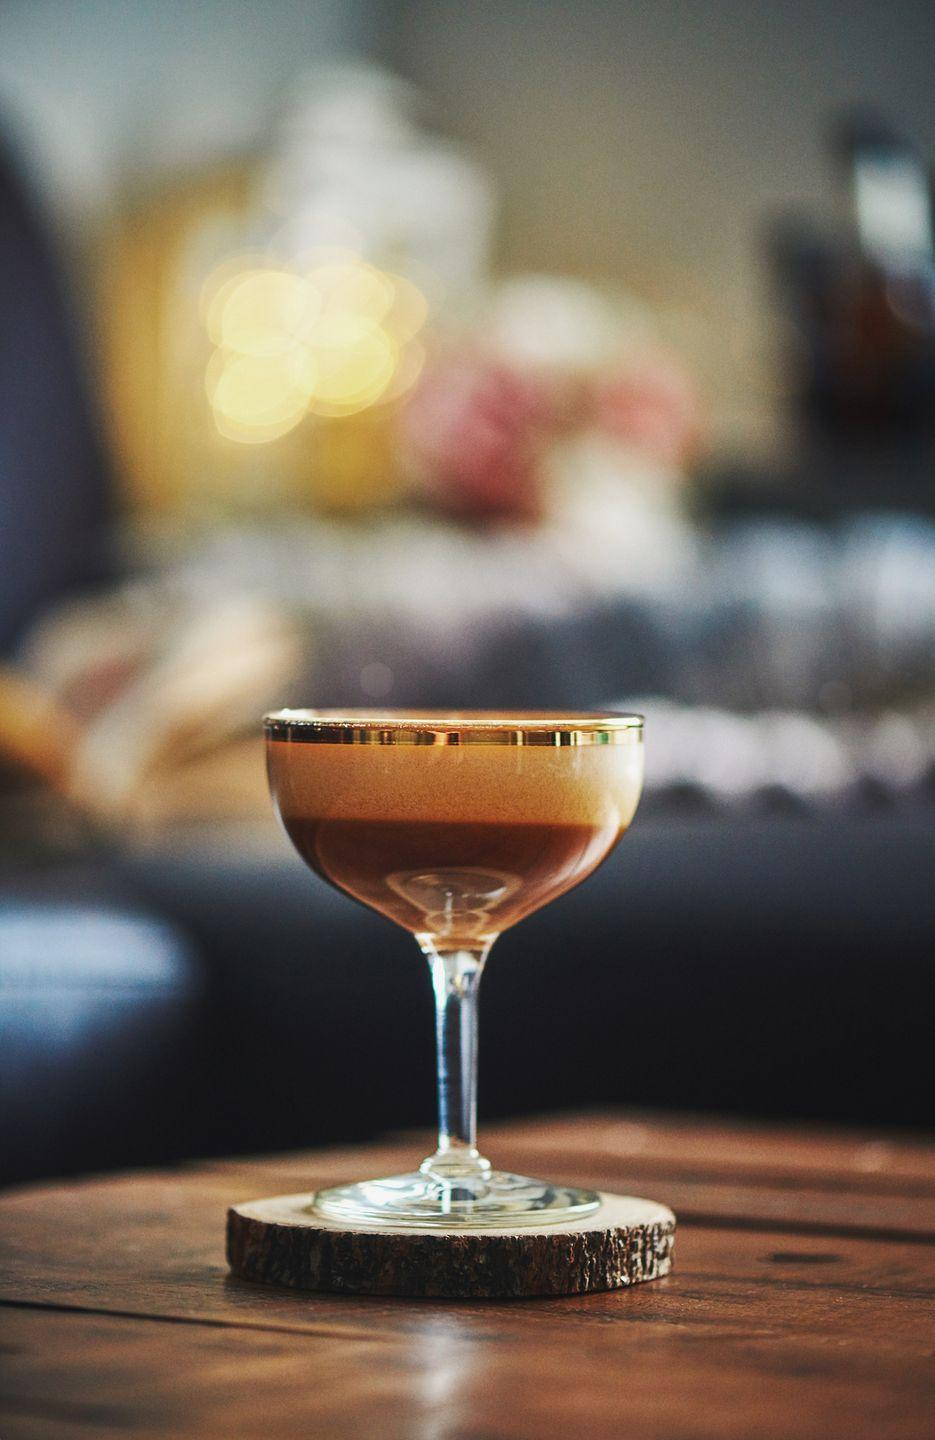 "<p>This now-classic cocktail combines espresso, vodka, and Kahlúa liqueur into a frothy pick-me-up. </p><p><strong>Pro tip: </strong>It was first coined the Vodka Espresso in 1983 by late bartender Dick Bradsell of the Soho Brasserie, who allegedly crafted the drink at the request of a British top model.<em><br><br><a href=""https://www.absolutdrinks.com/en/drinks/espresso-martini/"" rel=""nofollow noopener"" target=""_blank"" data-ylk=""slk:Get the recipe for Espresso Martini from Absolut »"" class=""link rapid-noclick-resp"">Get the recipe for Espresso Martini from Absolut »</a></em></p>"